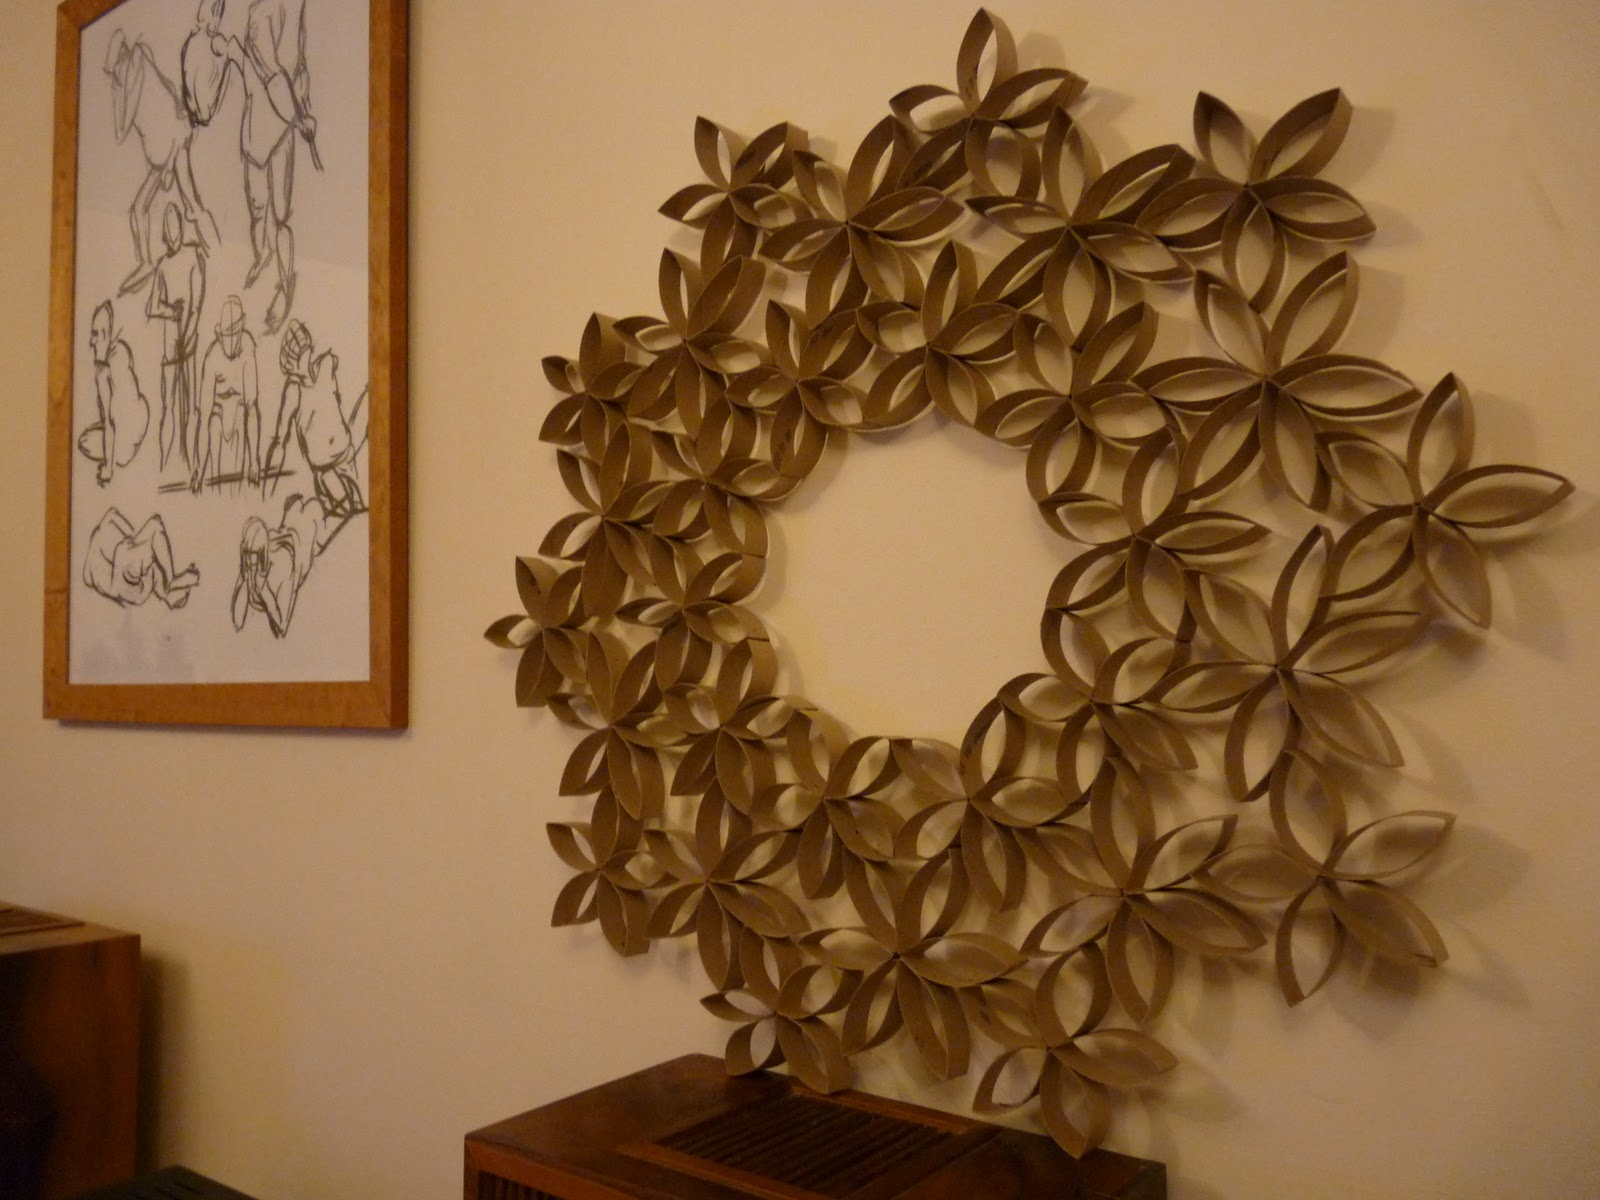 Noisy pitta recycle used toilet roll tubes into gorgeous Wall art paper designs